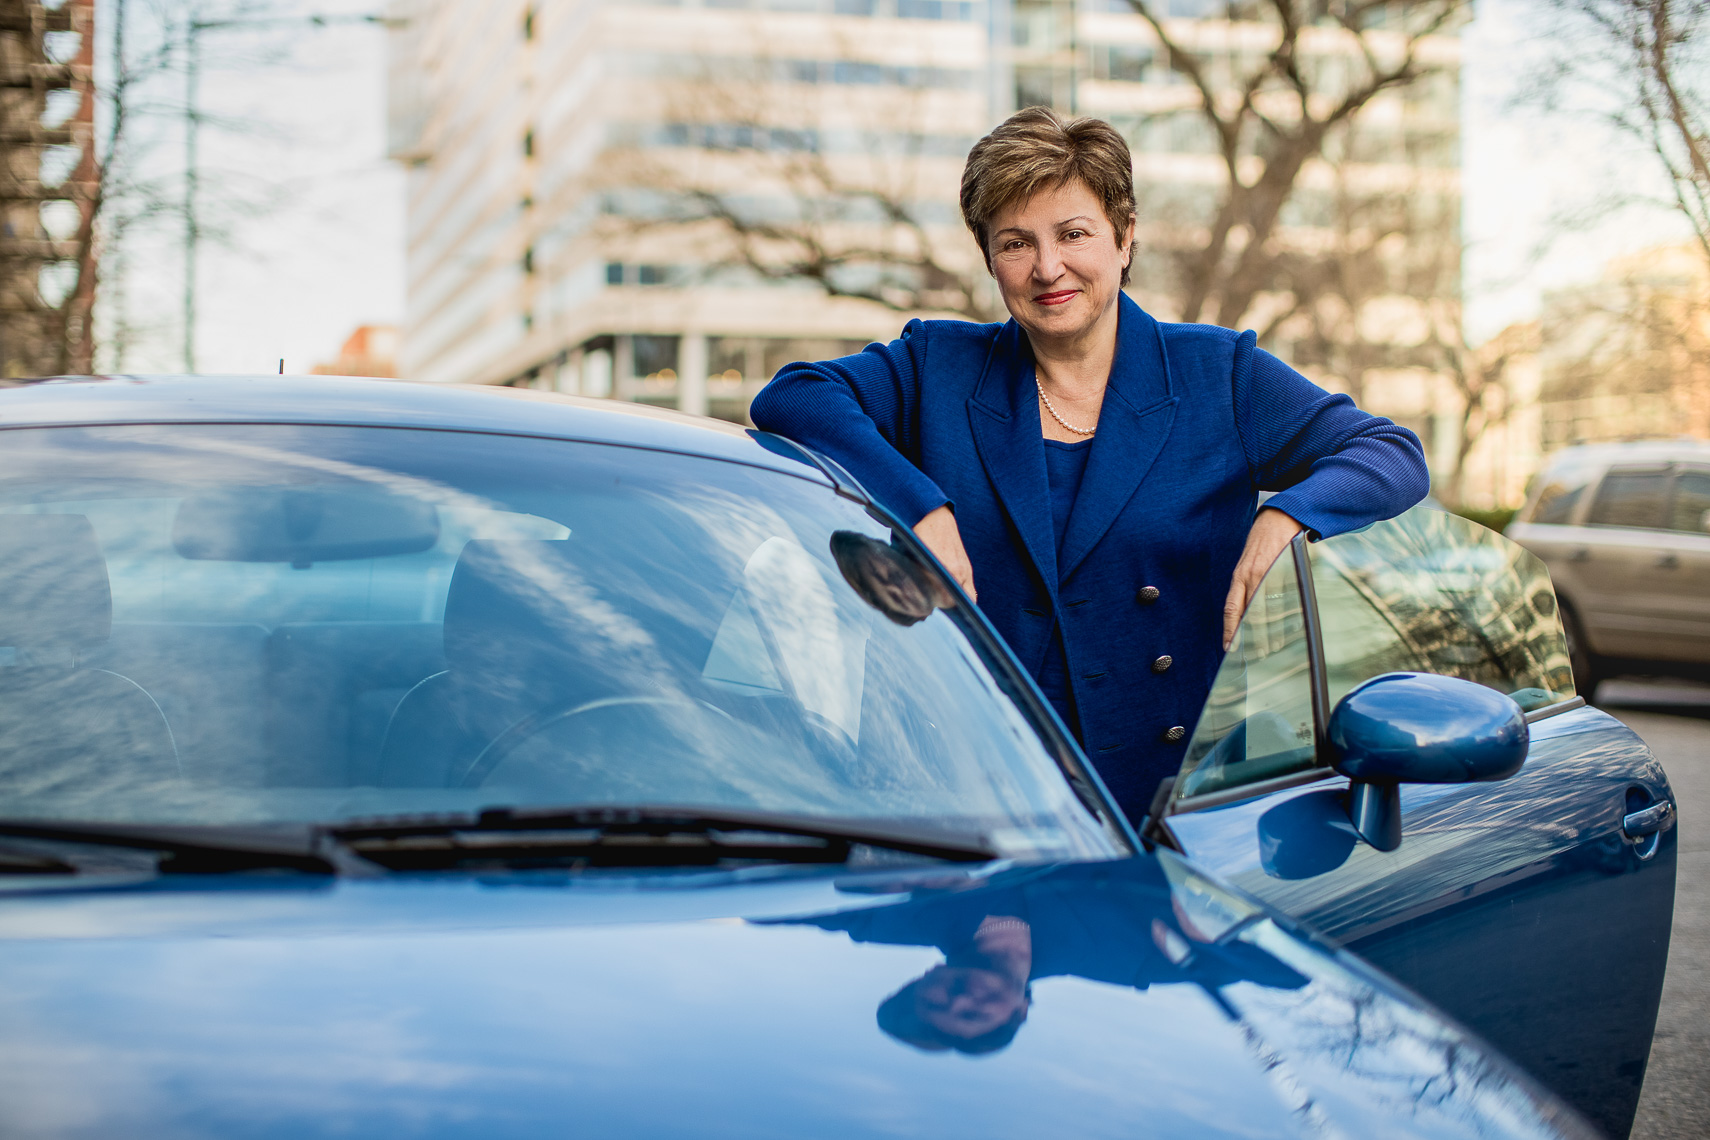 portrait13_ World Bank CEO Kristalina Georgieva for The Financial Times Baltimore Washington D.C. creative editorial portrait photographer based in Baltimore City editorial portraiture and lifestyle photography photos of